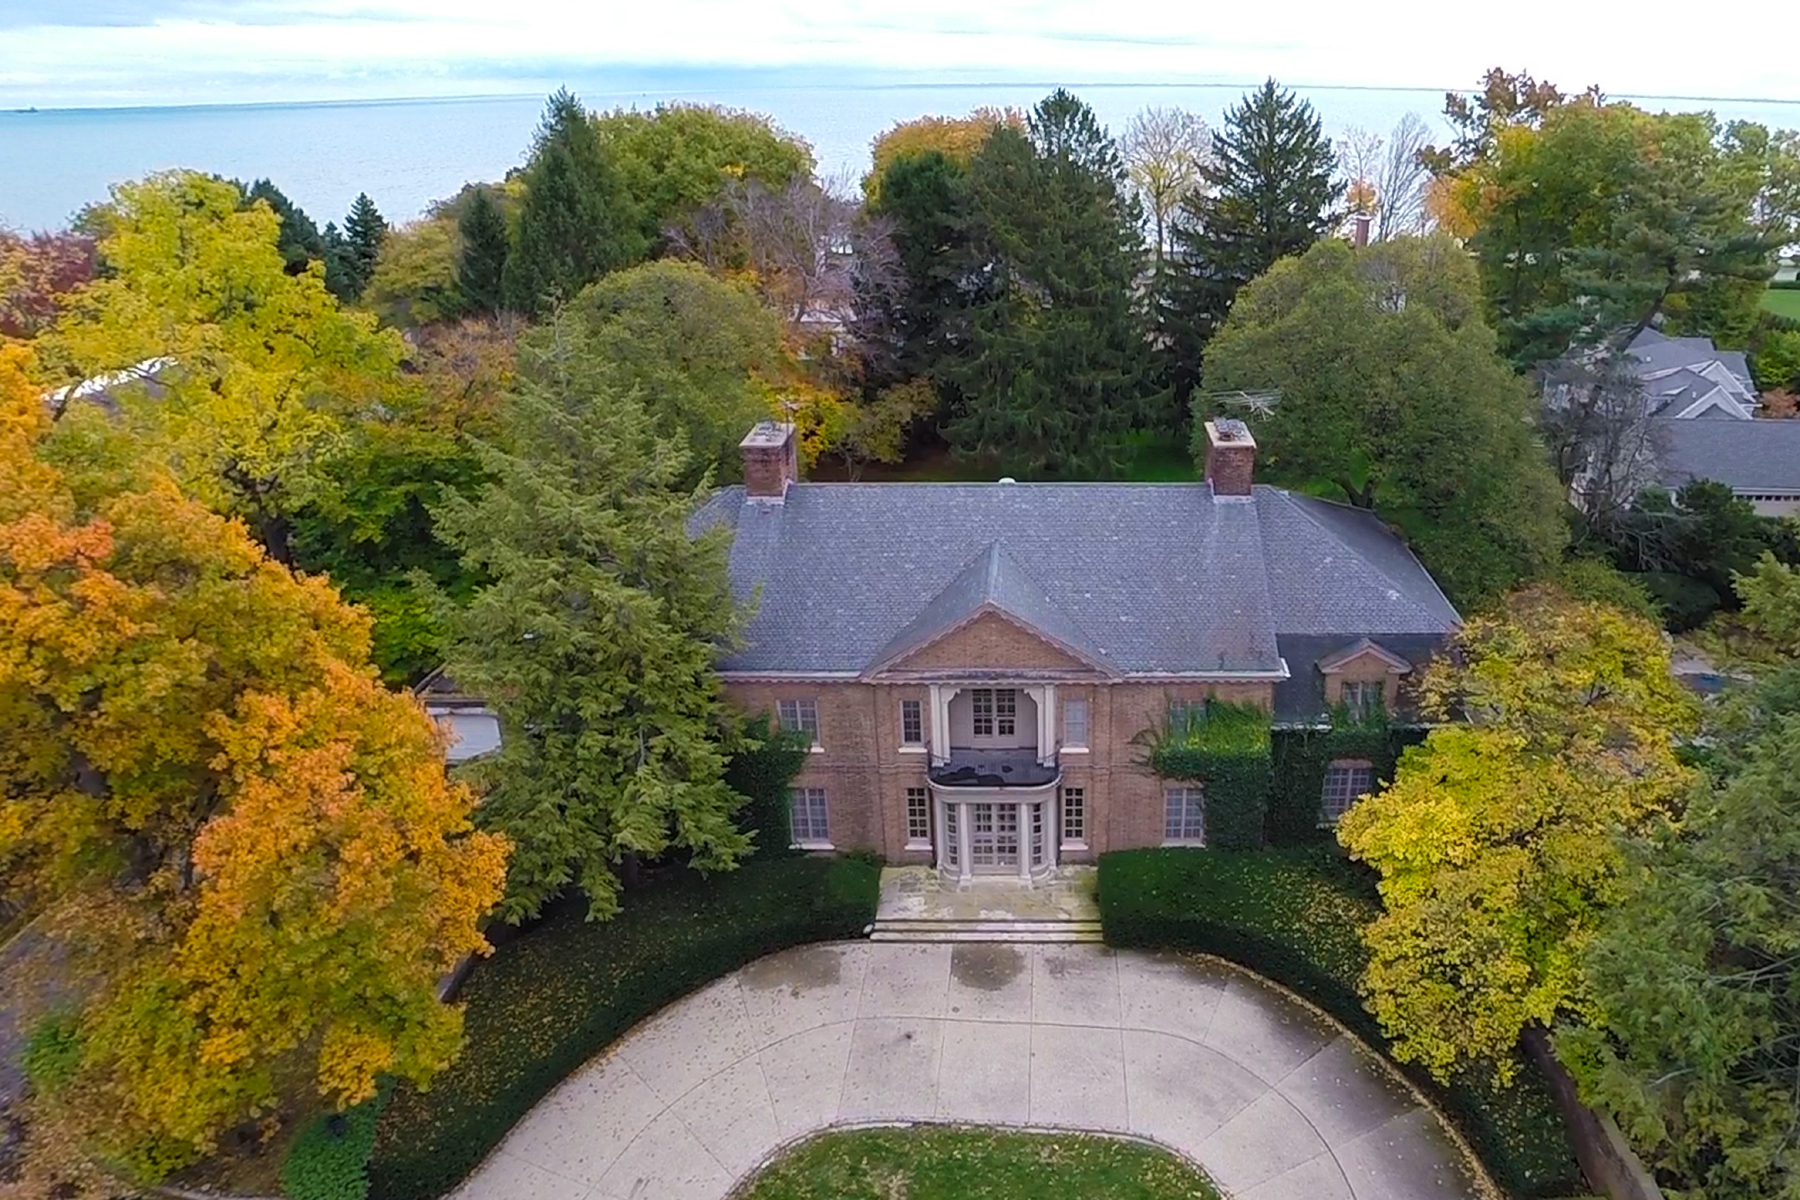 Vivienda unifamiliar por un Venta en Grosse Pointe Farms 30-A Preston Grosse Pointe Farms, Michigan, 48236 Estados Unidos